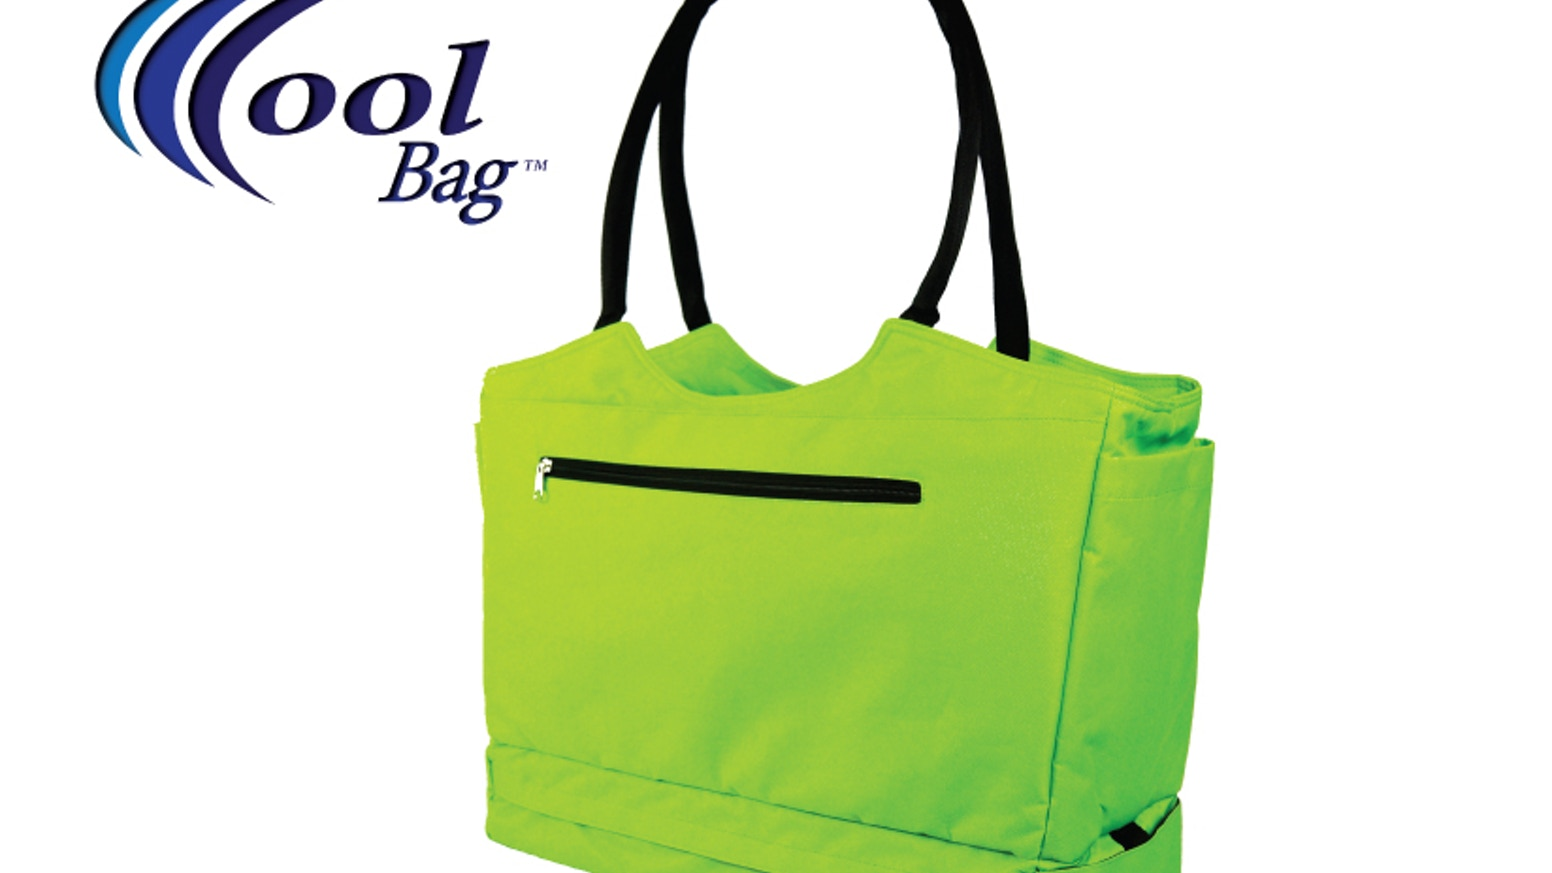 Coolbag Locking Travel Bag Beach Tote With Cooler